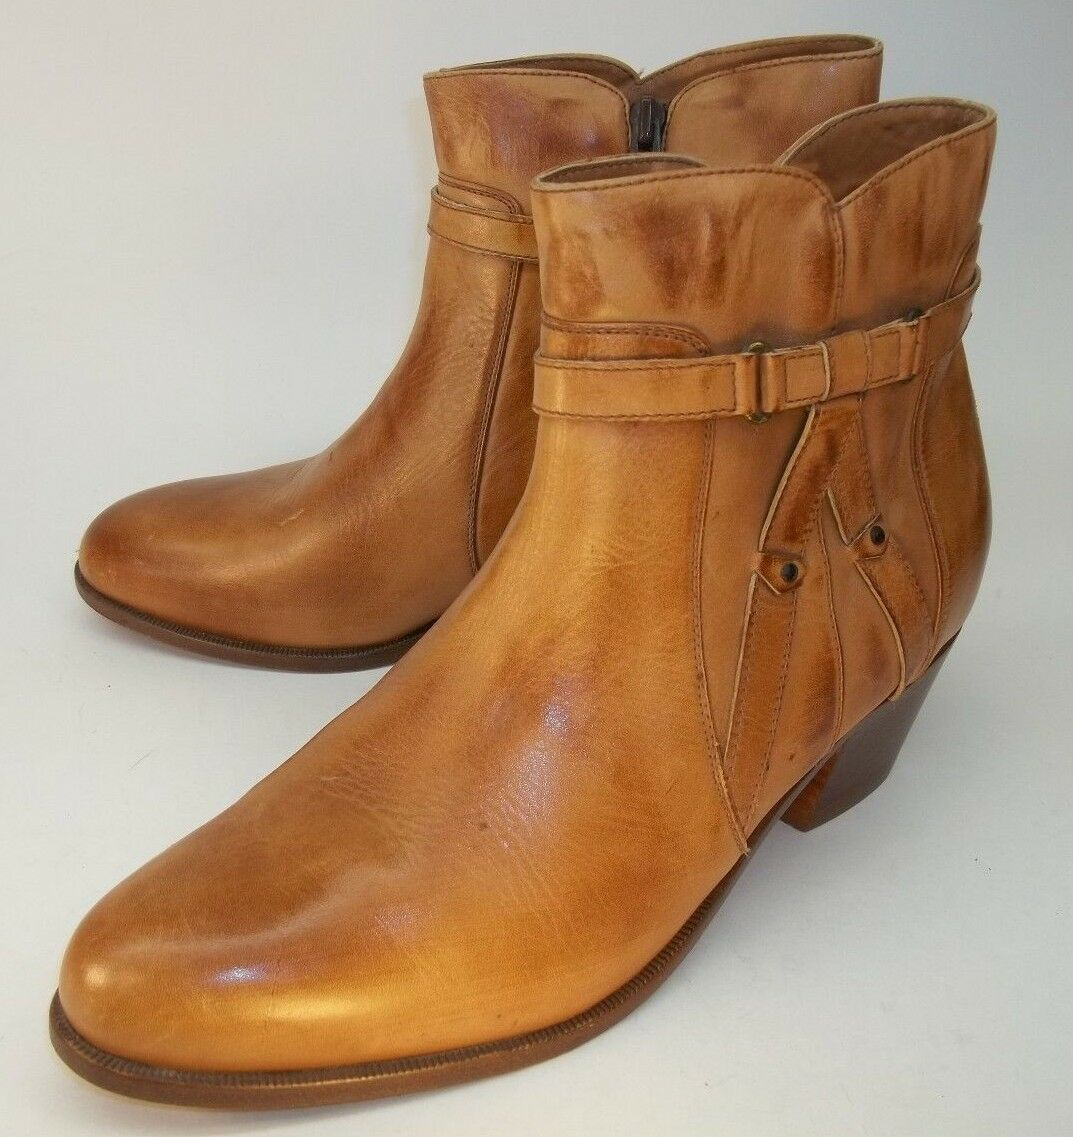 Giovanni Wos Stivali  8.5 Brown Pelle Zip Soles Straps Heels Ankle Booties